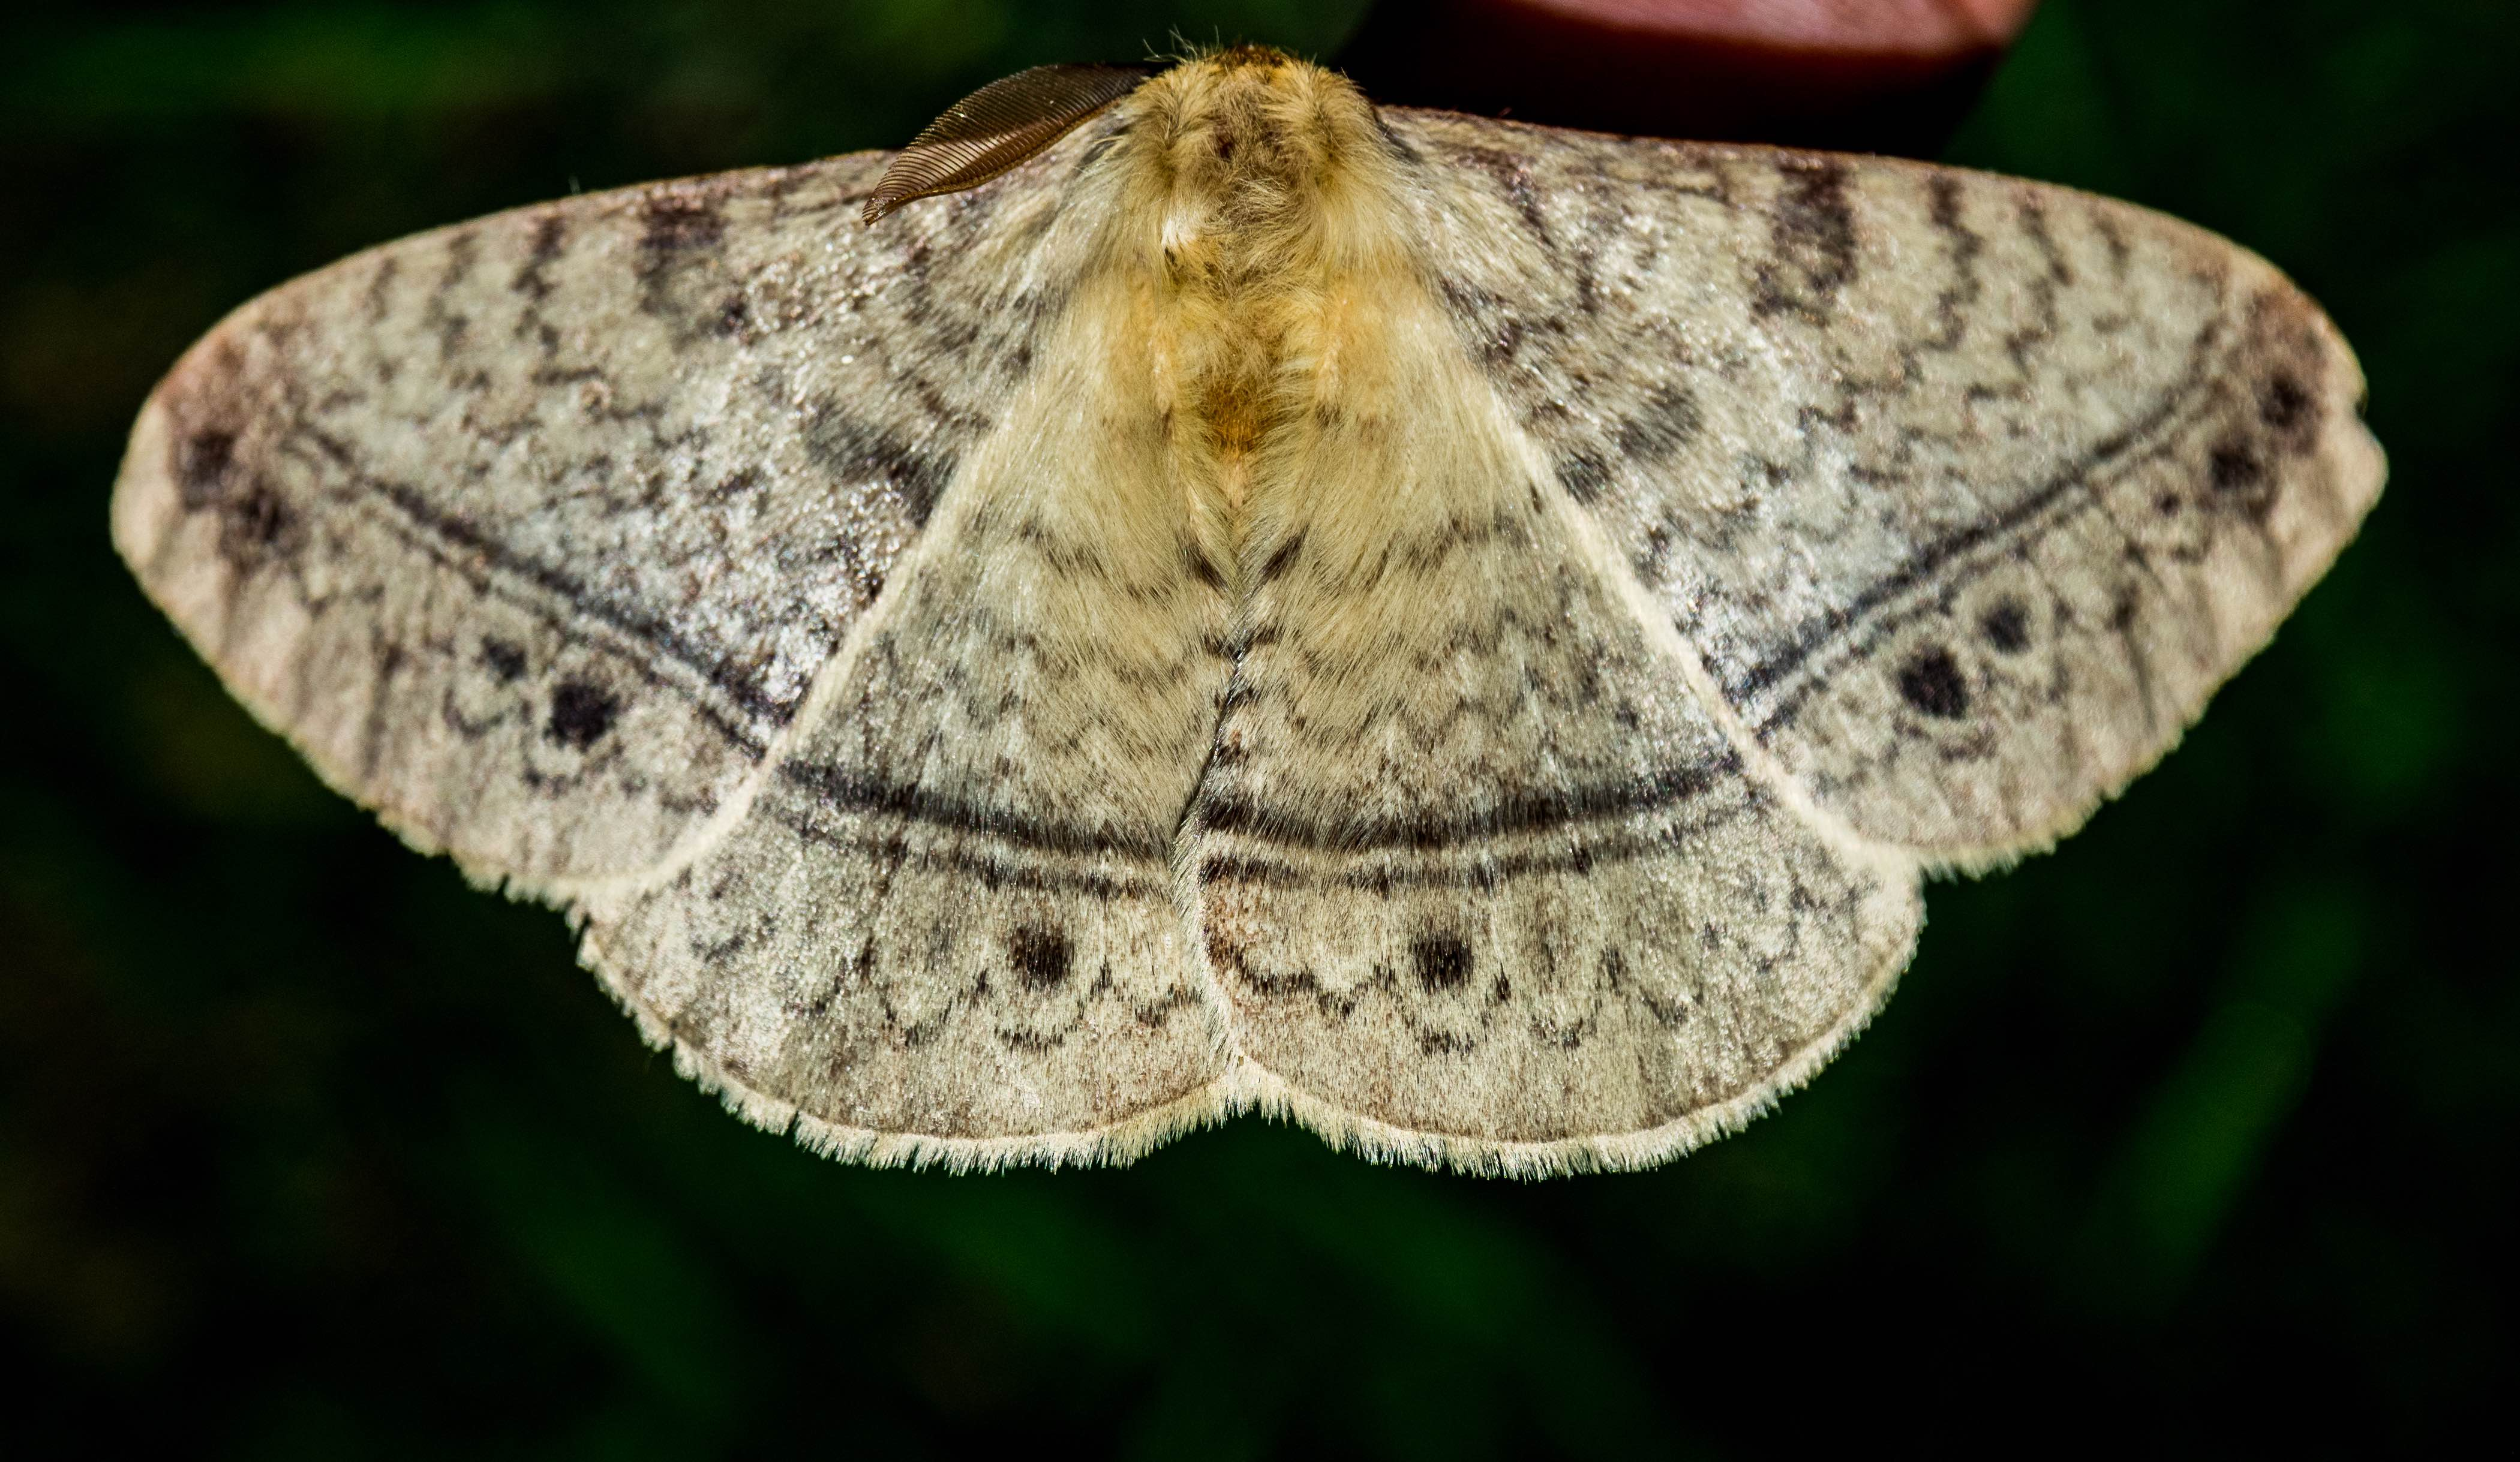 With a wingspan of about 8 cm, the monkey moth is one of the larger moths spotted in and around Delhi. Males have a furry head somewhat like a monkey's, giving the species its name. Photo: Courtesy Conservation Education Centre